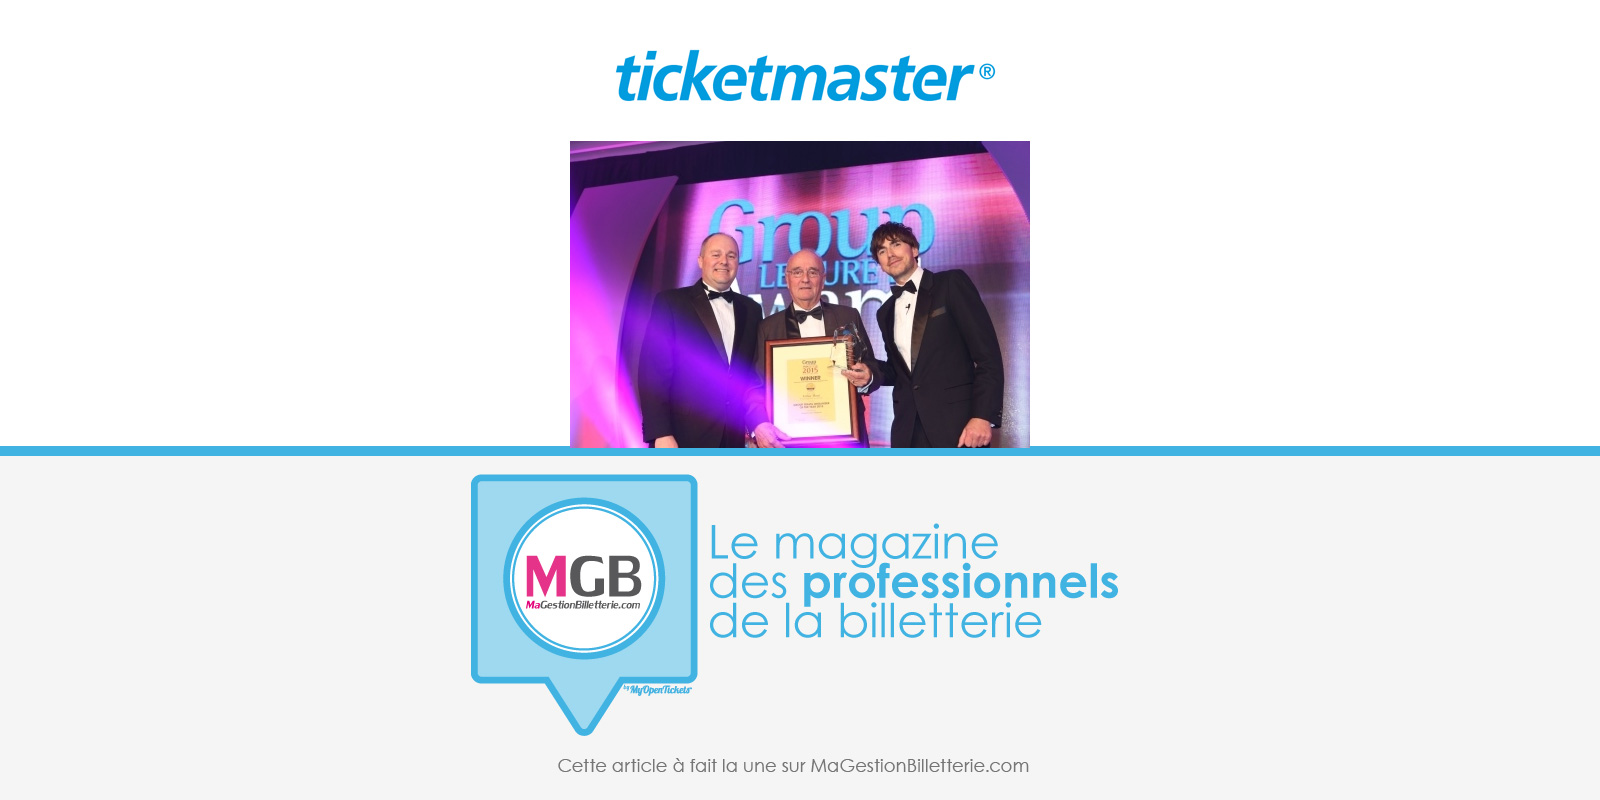 ticketmaster-Group-Leisure-Awards-une4